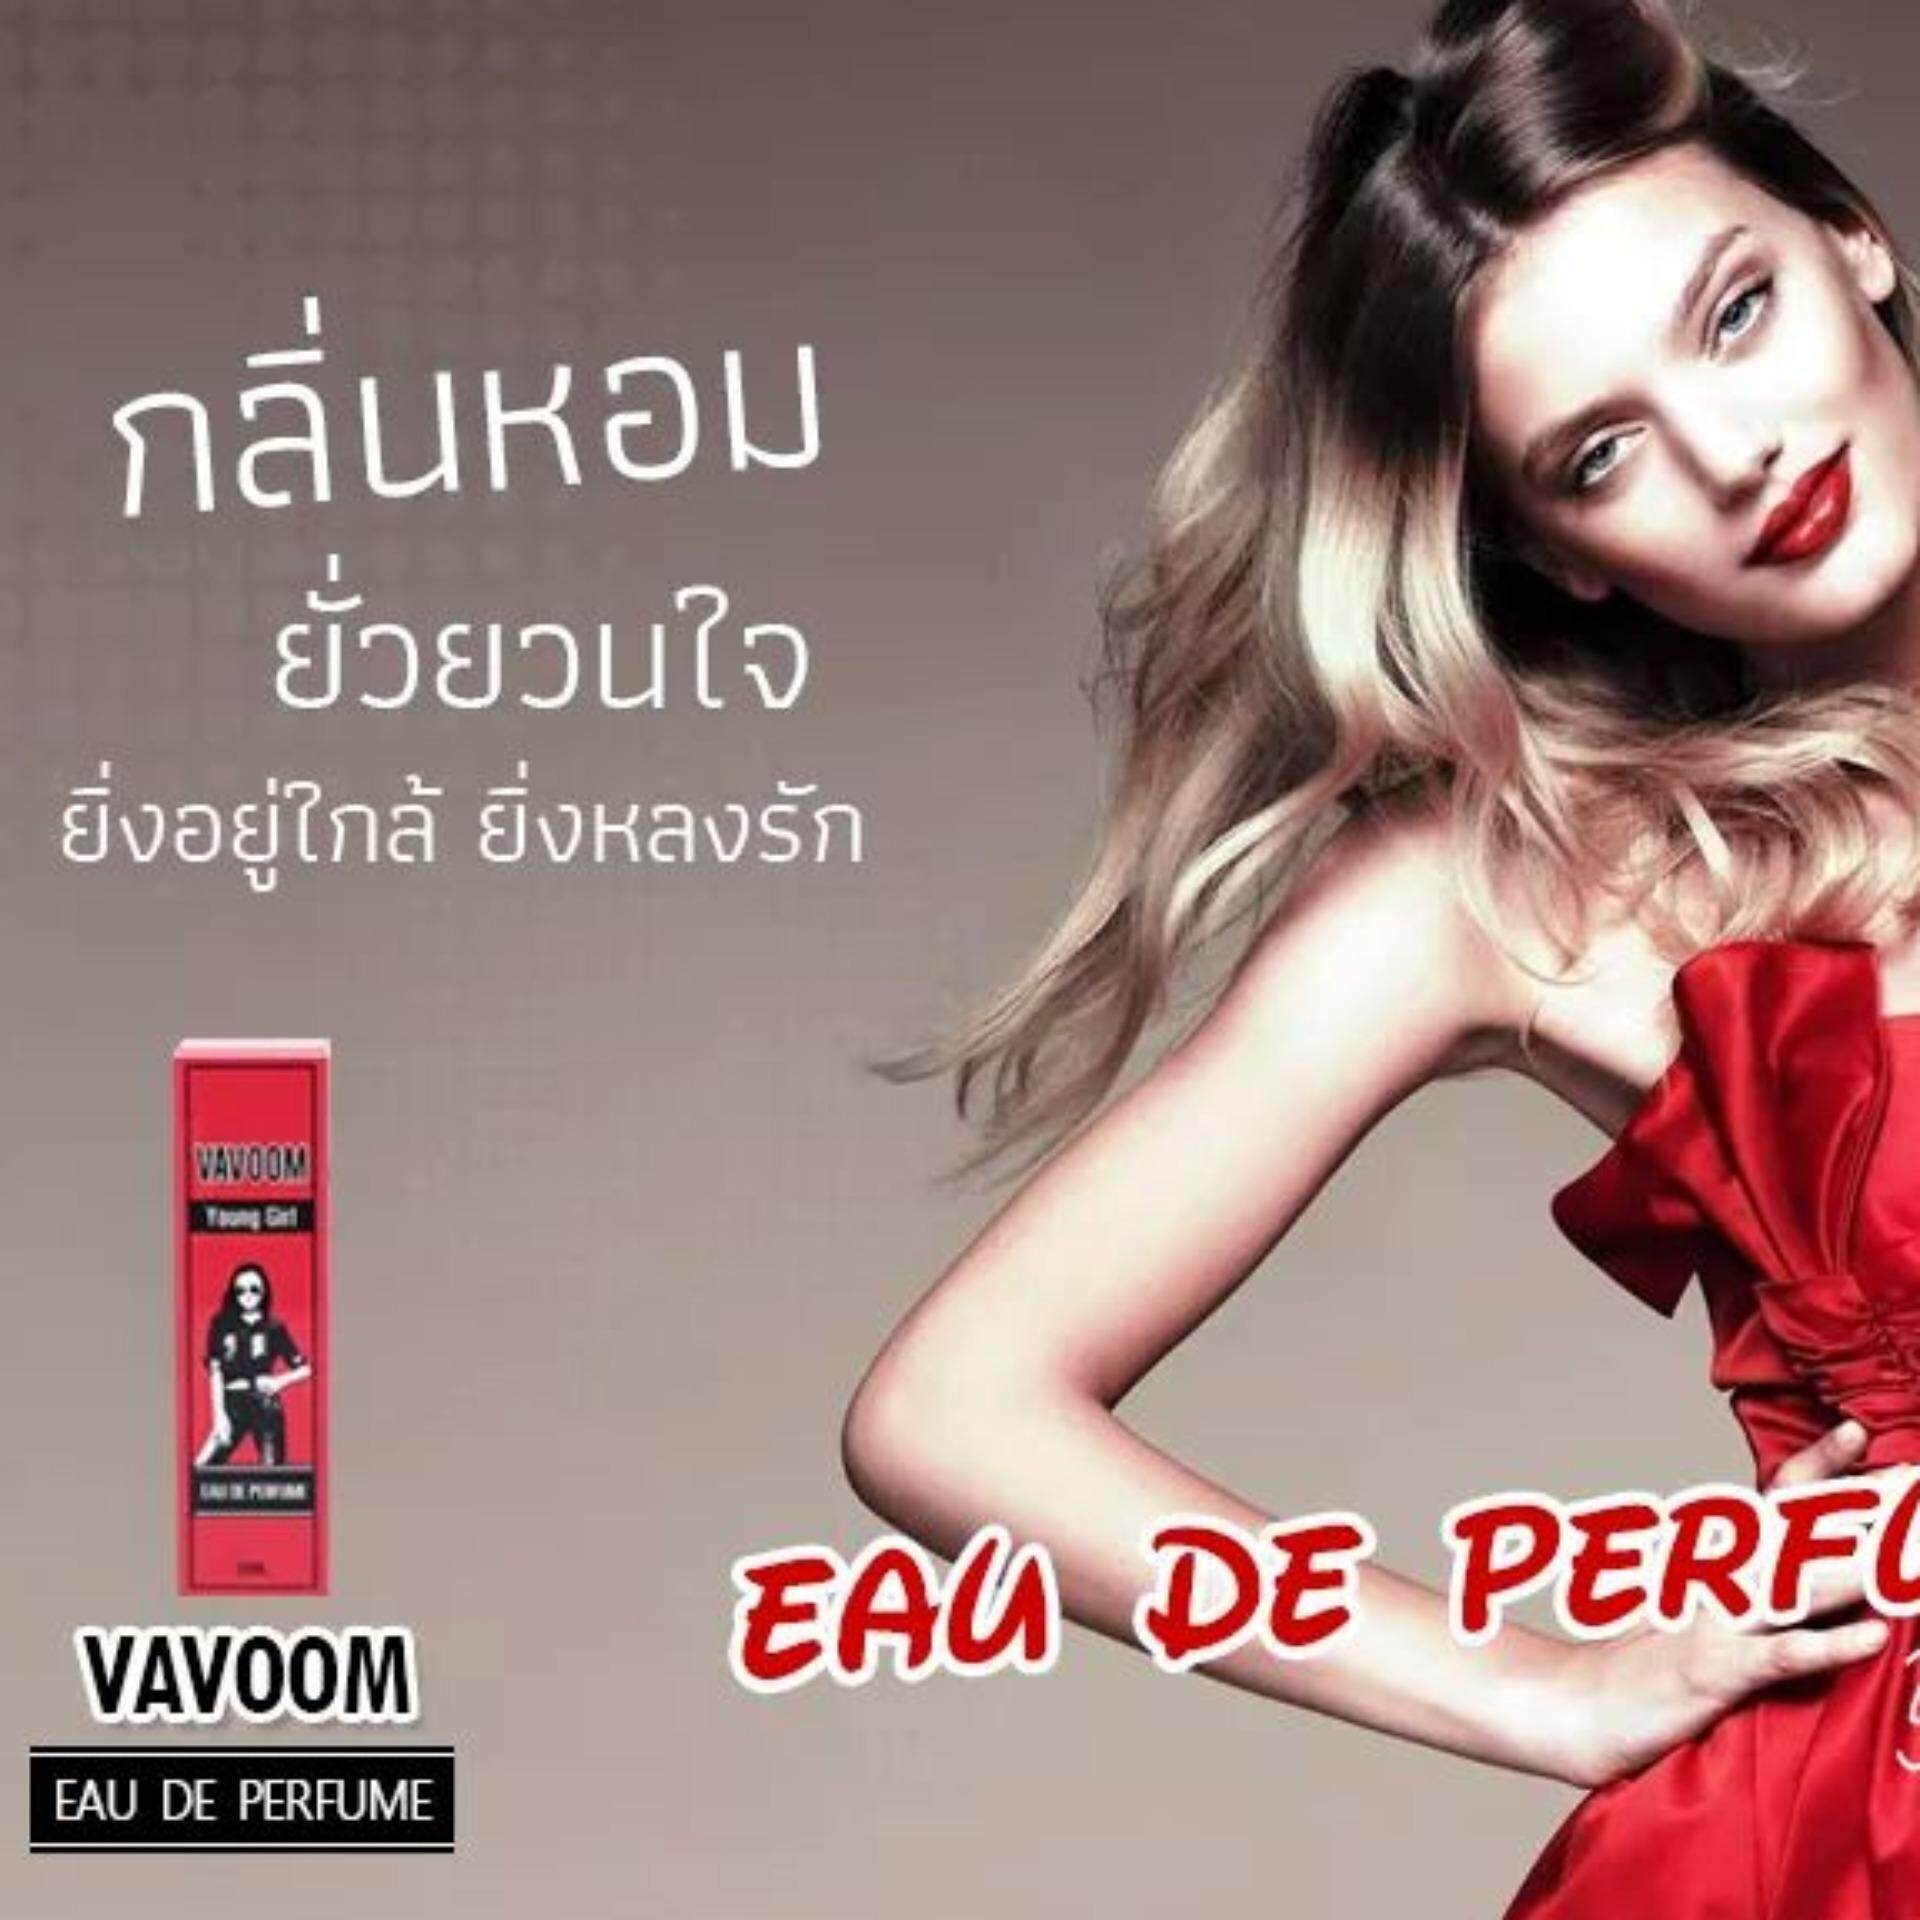 น้ำหอม VAVOOM Young Girl 30 ml.